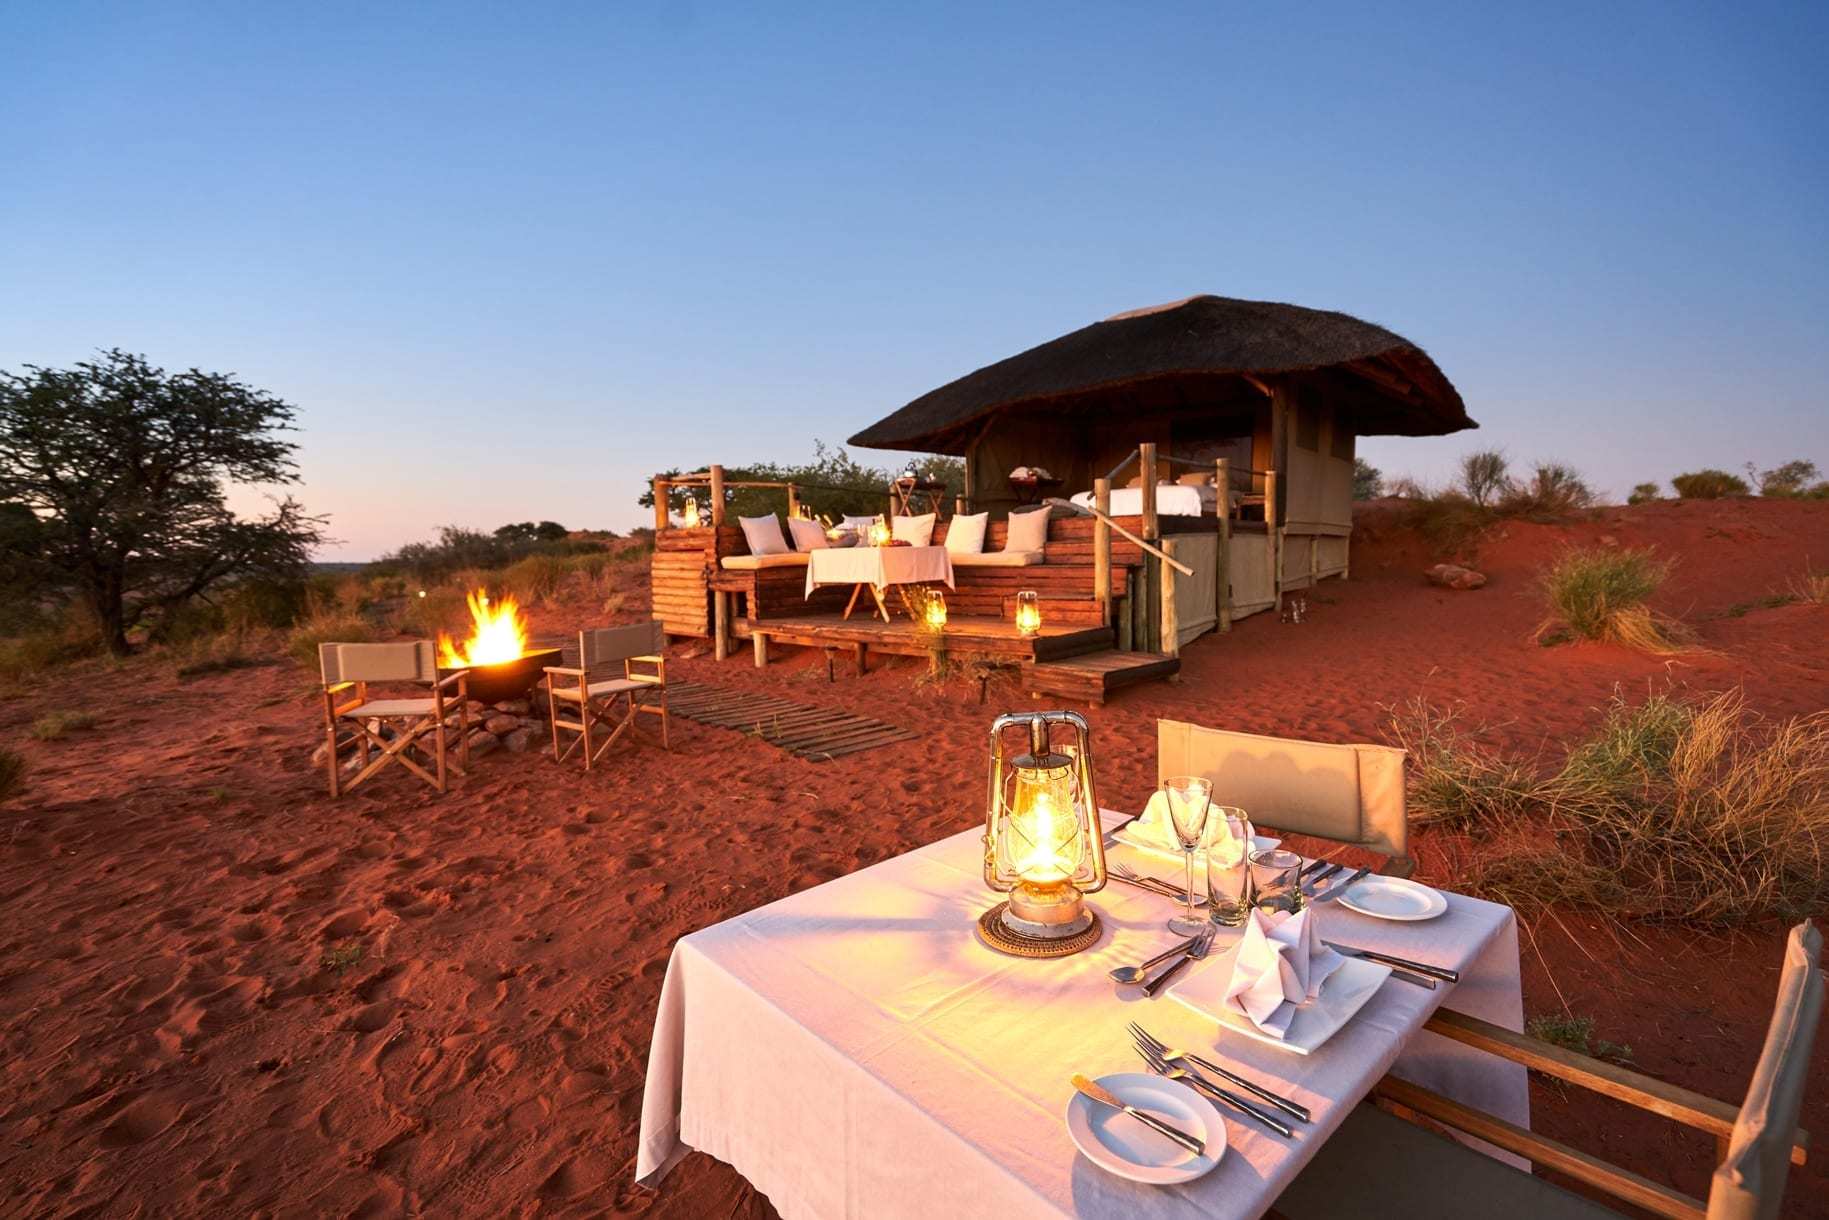 Tswalu Malori South Africa Star Beds